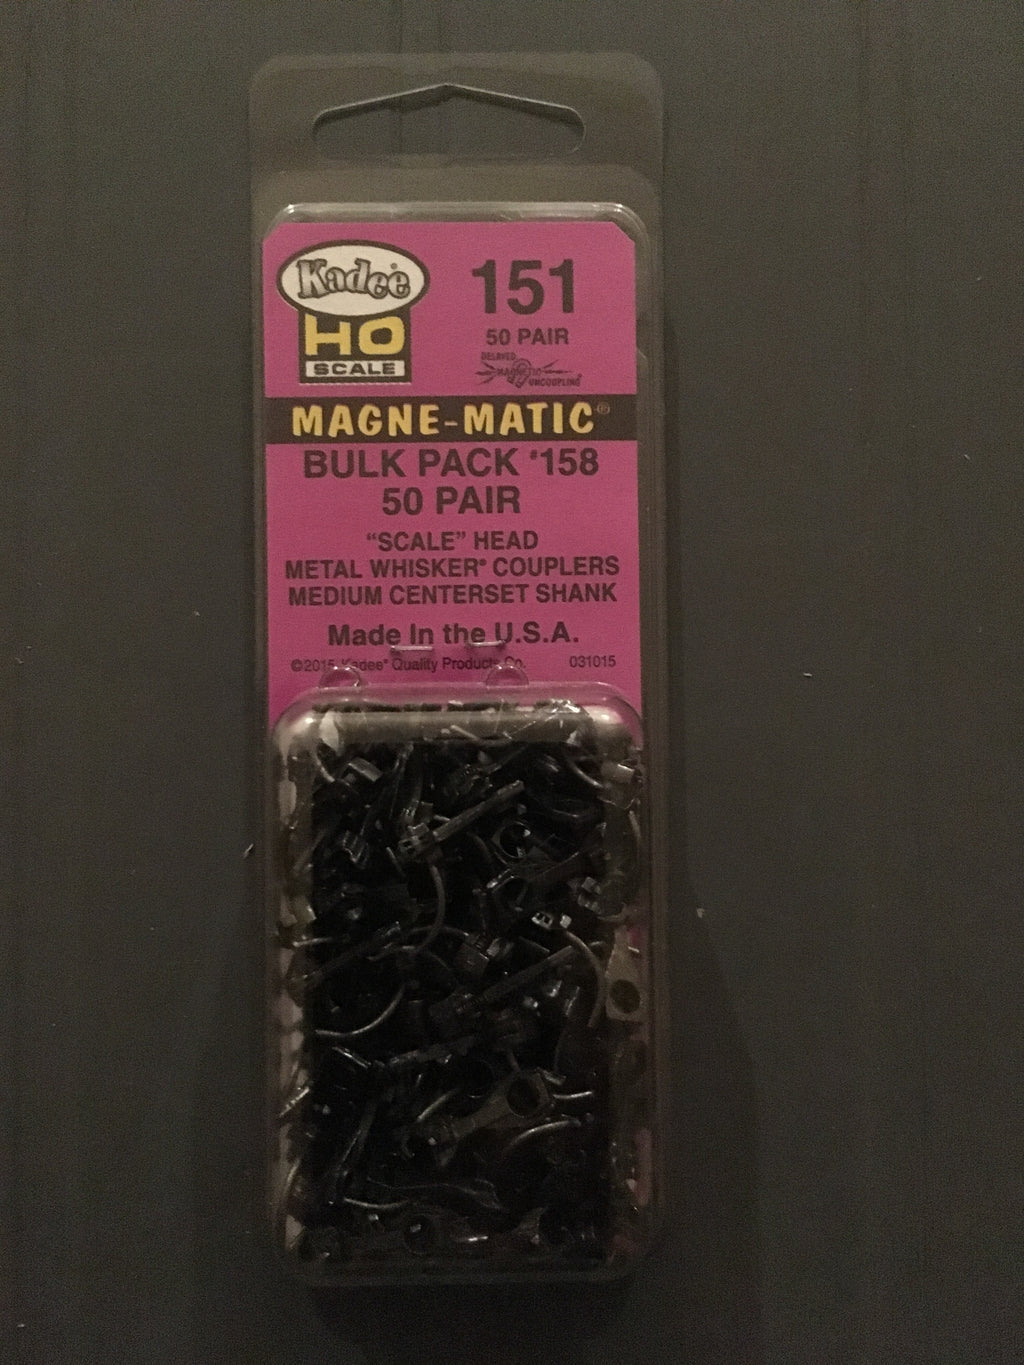 # 151 has 50 pair in bulk pack 158 scale head